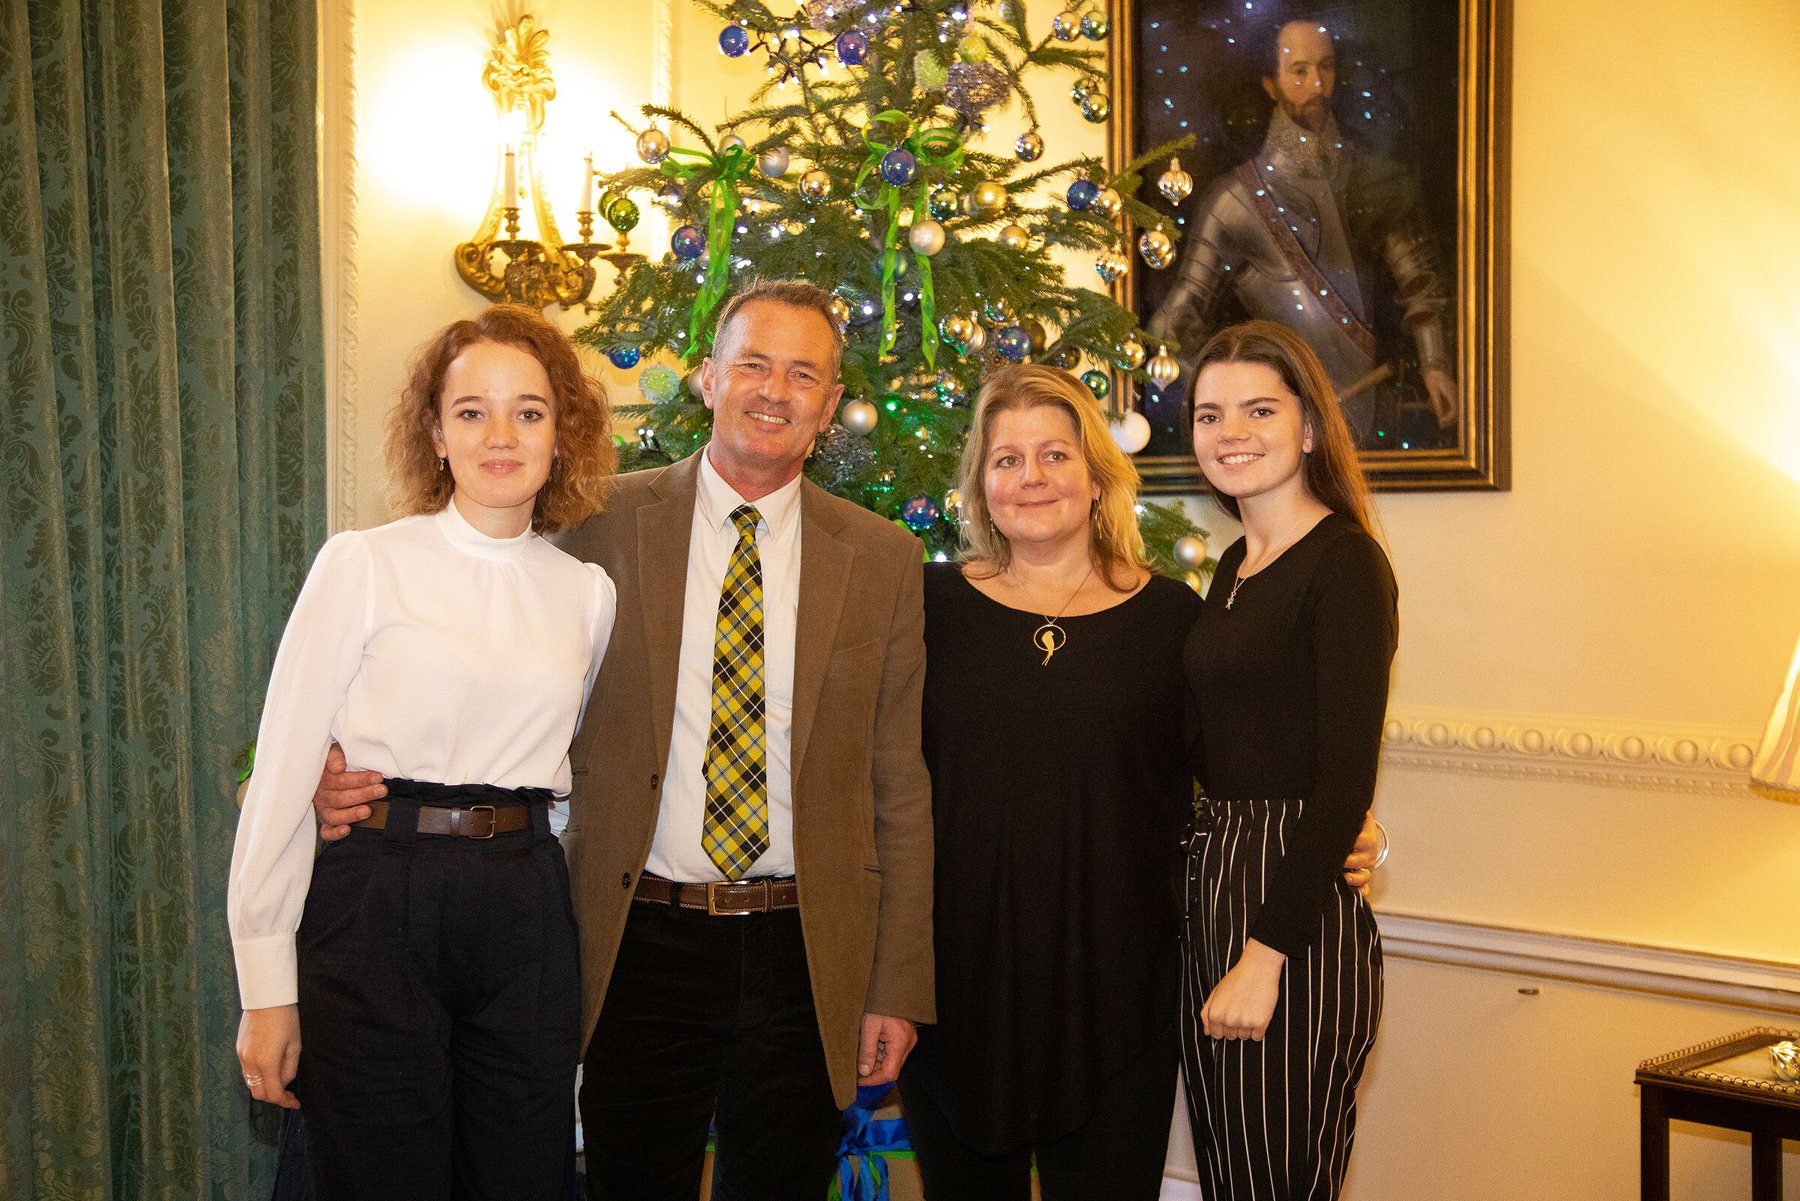 At Downing Street, Ladydowns Christmas Trees